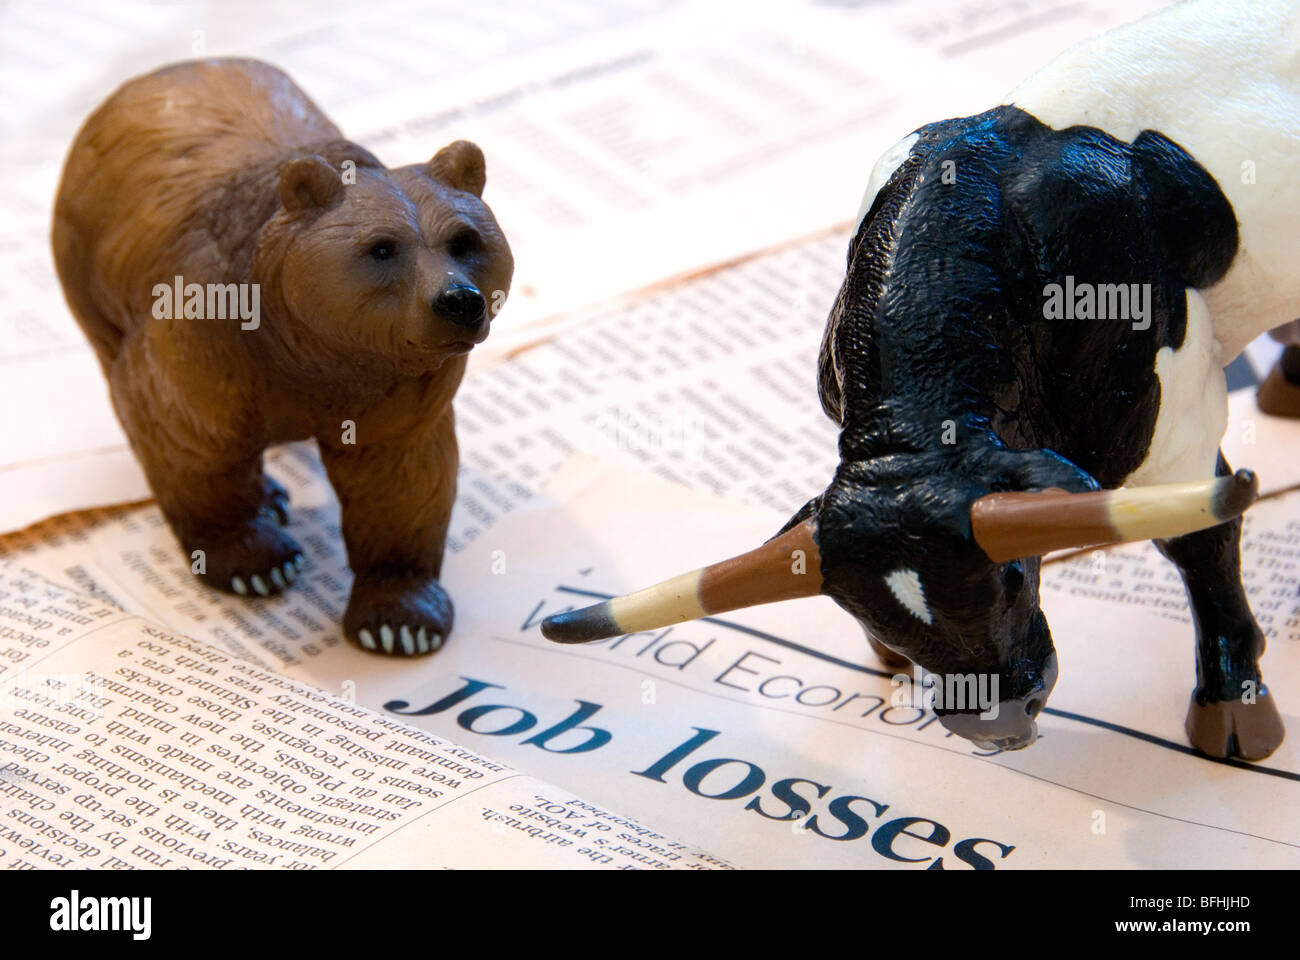 A Bull and Bear over the World Economy reports of Job Losses representing the Finance Markets - Stock Image